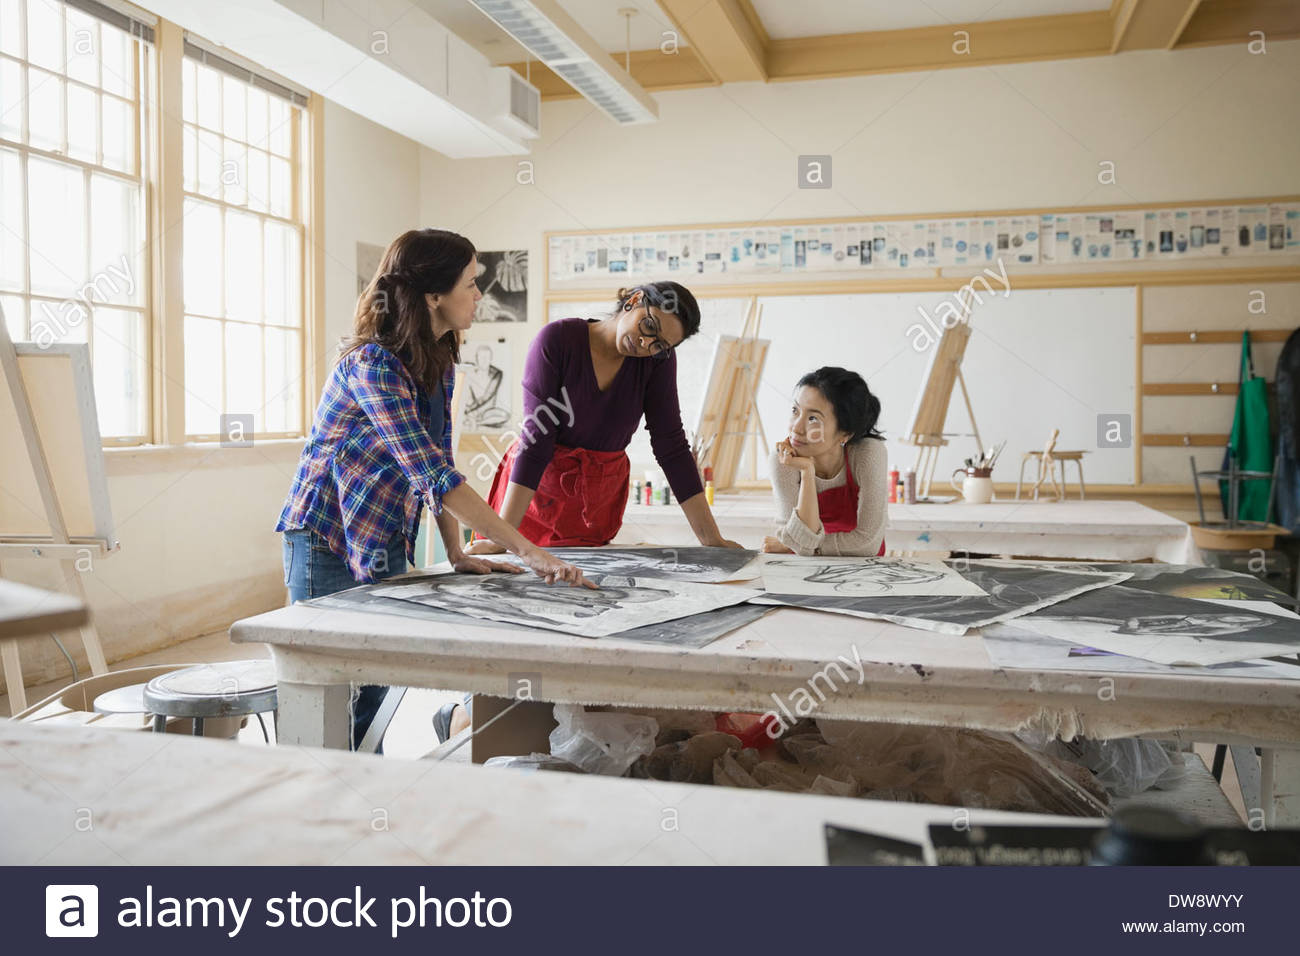 Students analyzing charcoal drawings in art class - Stock Image